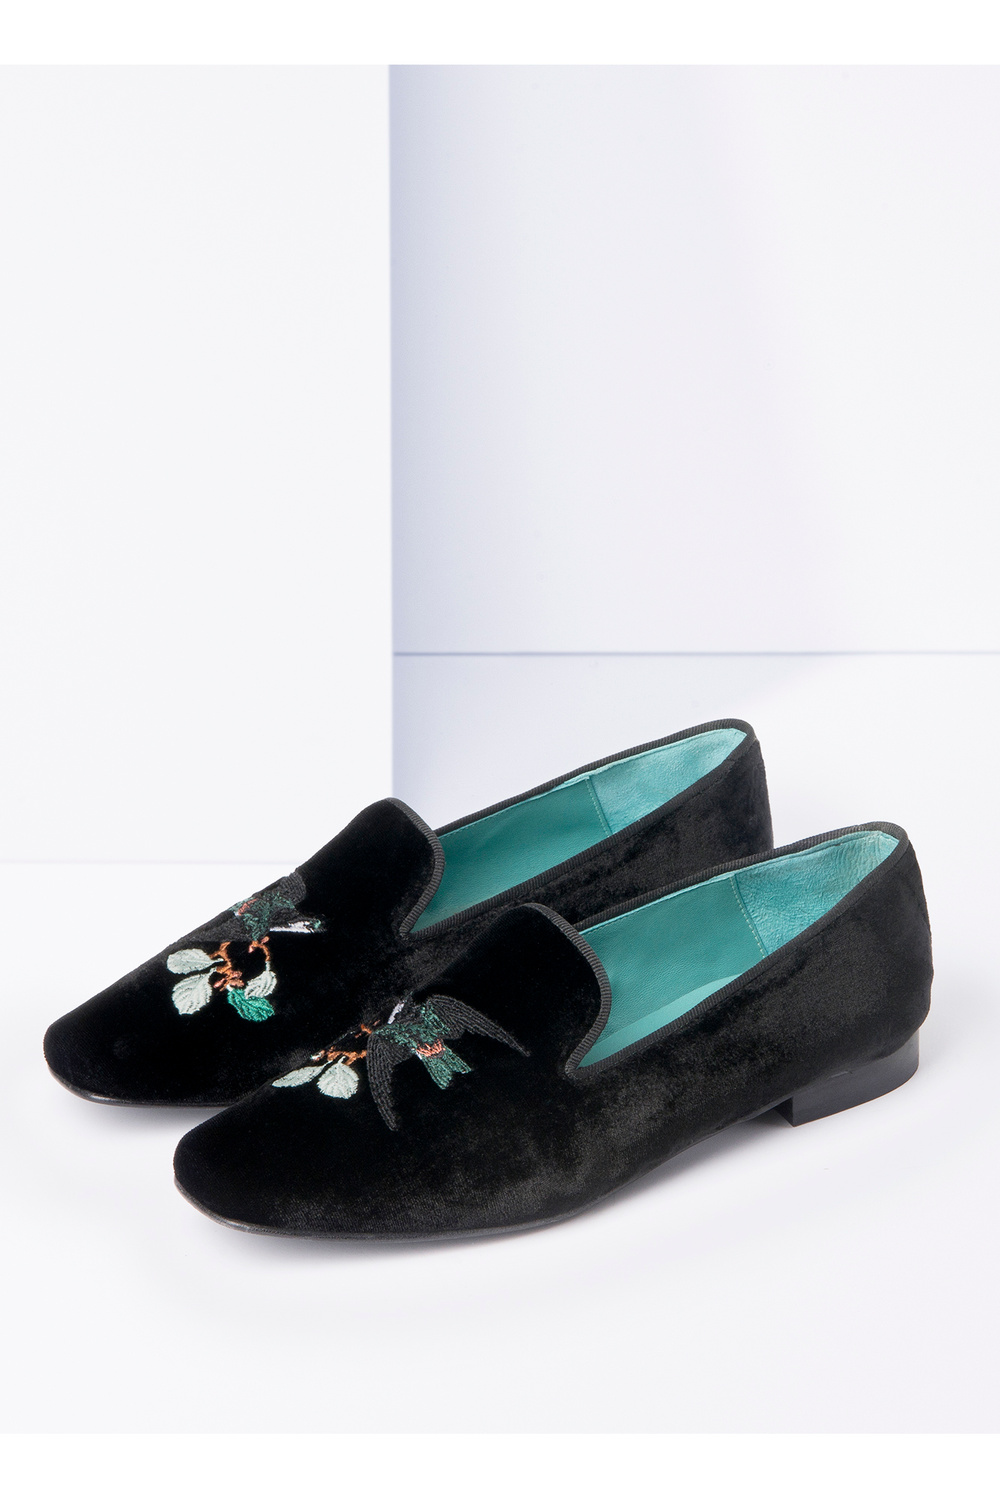 386_066f91545f-malin-shoe-black-3-by-malina-1995krjpgpdf.jpg